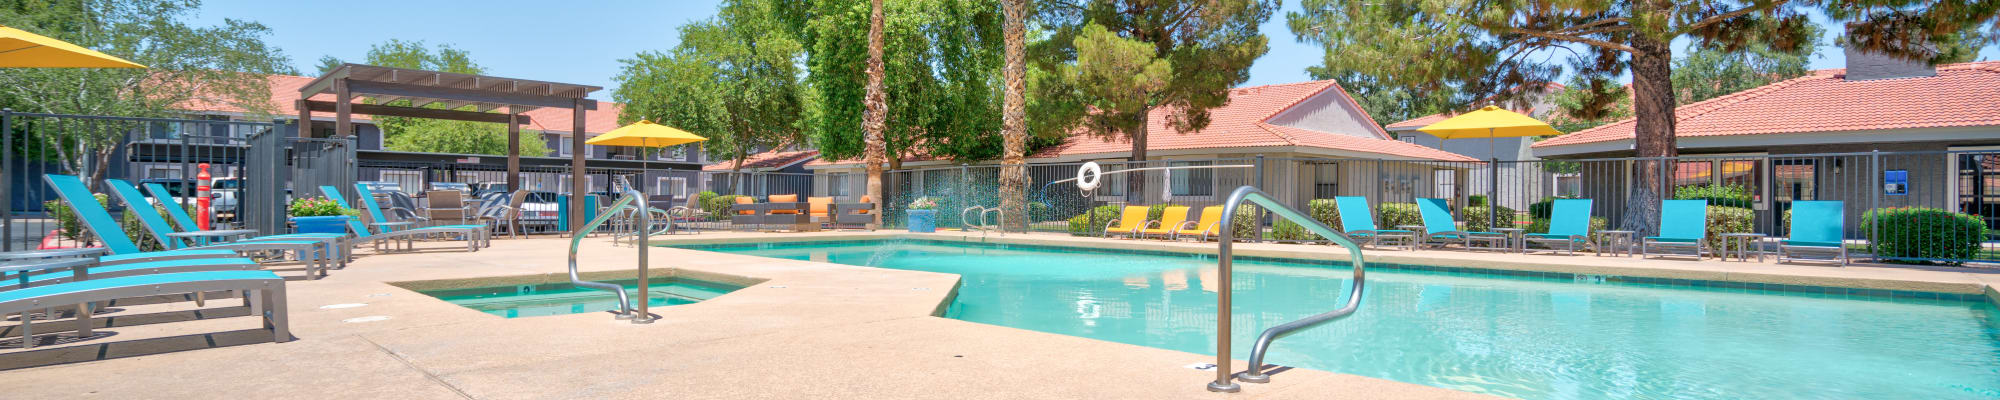 Features and amenities at Argenta Apartment Homes in Mesa, Arizona